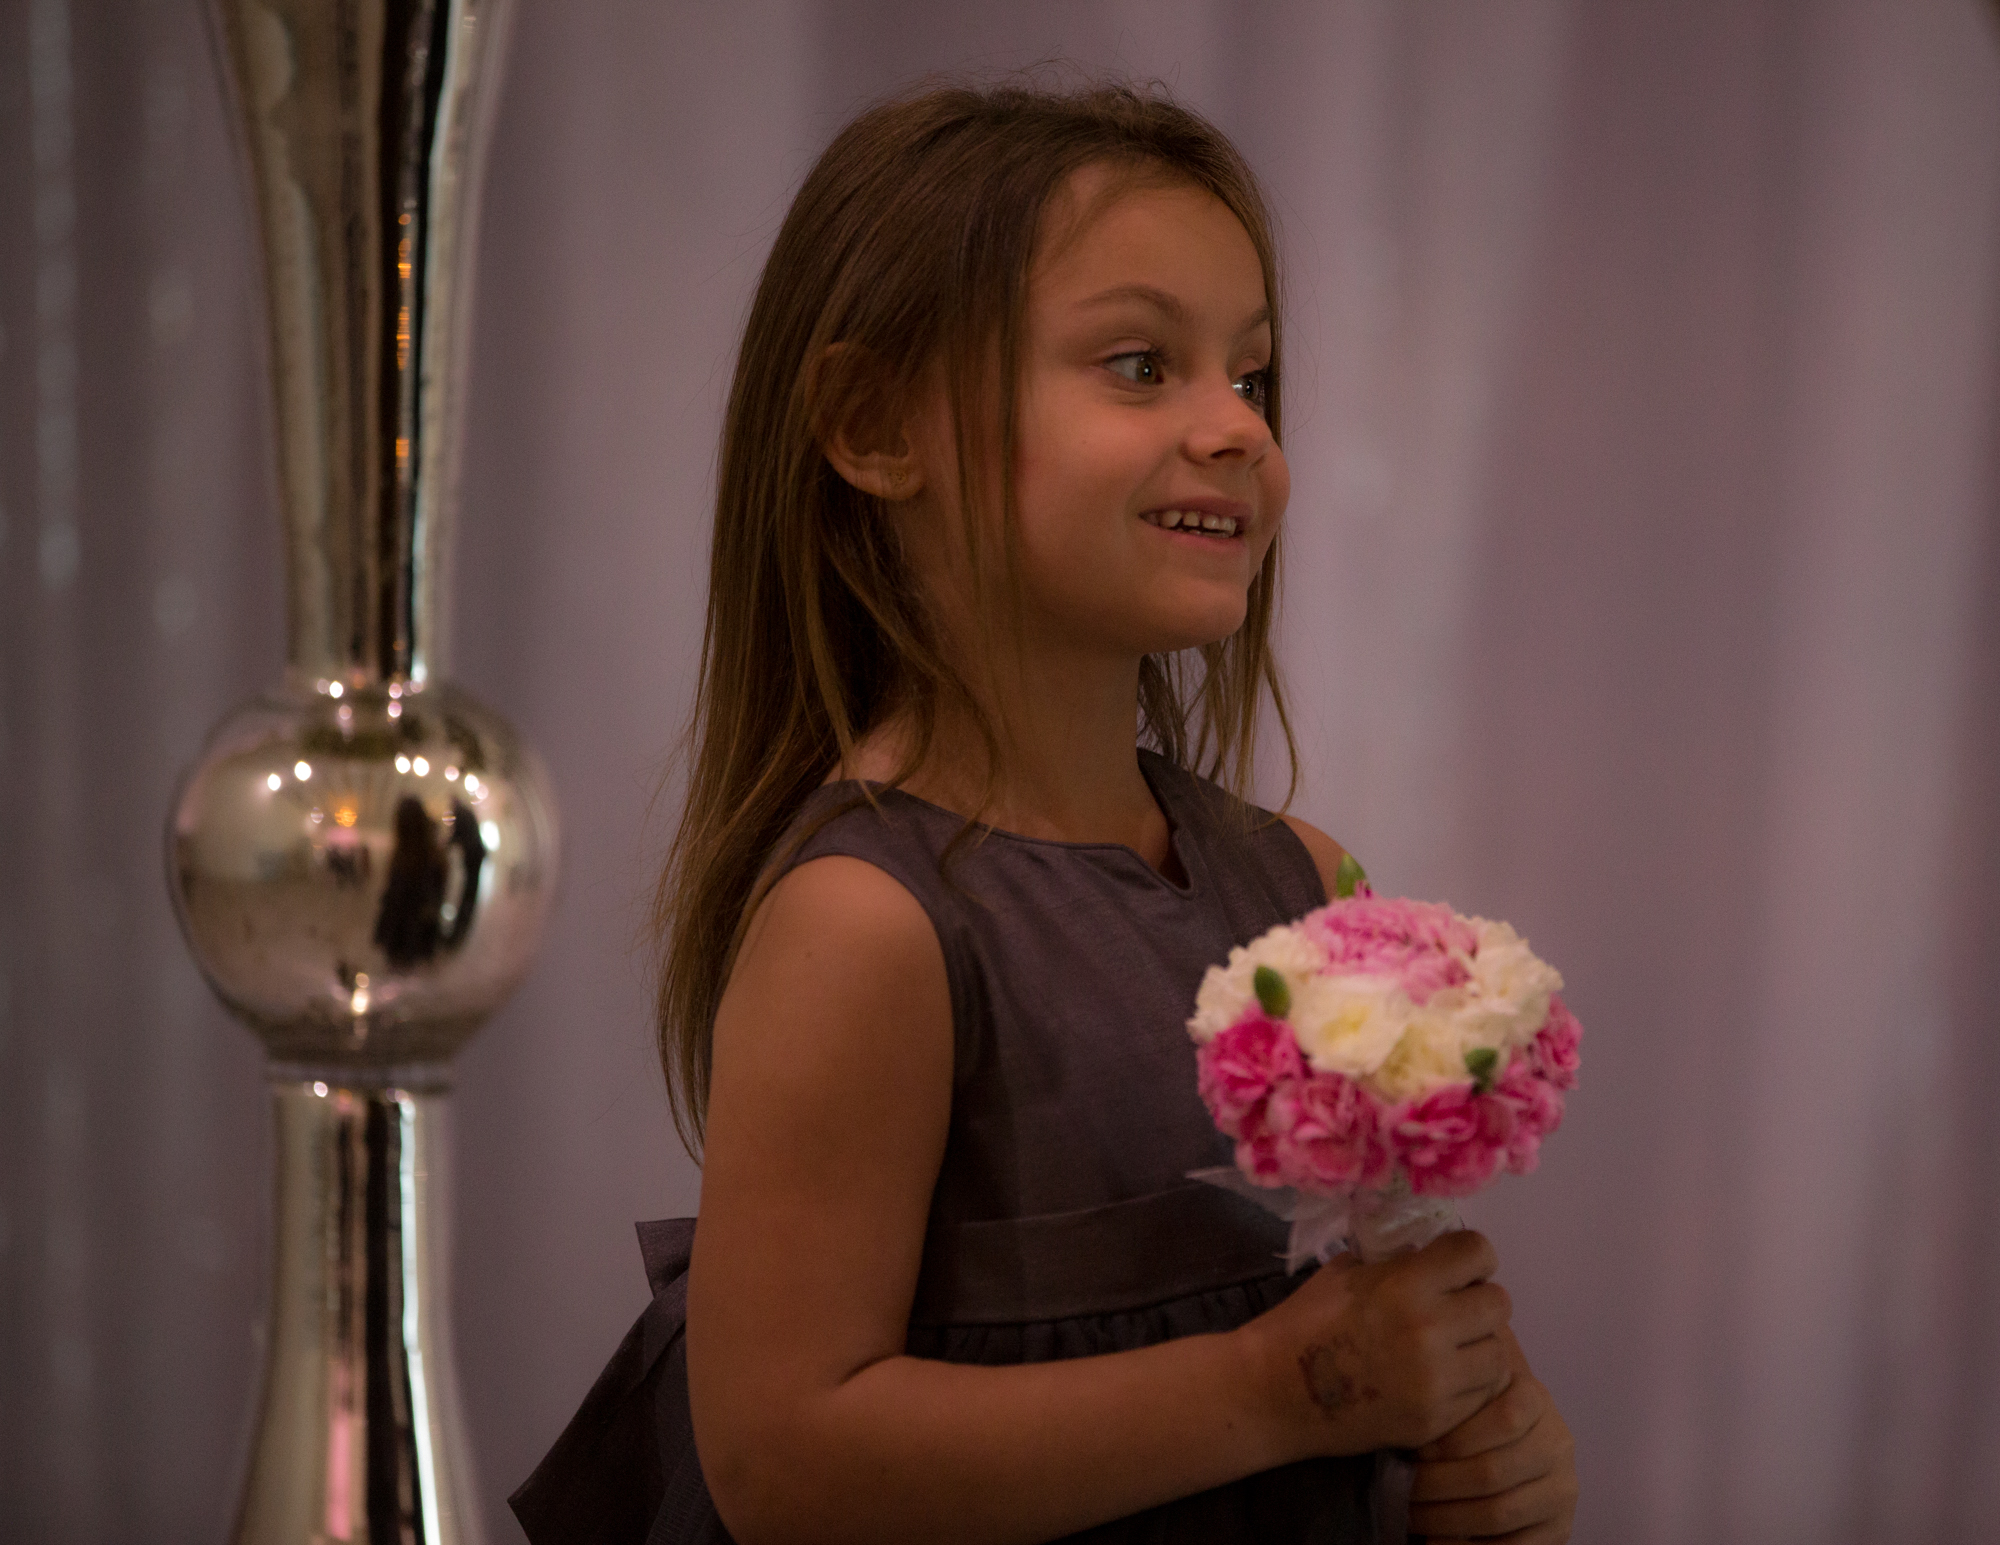 Colleen Stavrakos Wedding Photography smiling young flower girl